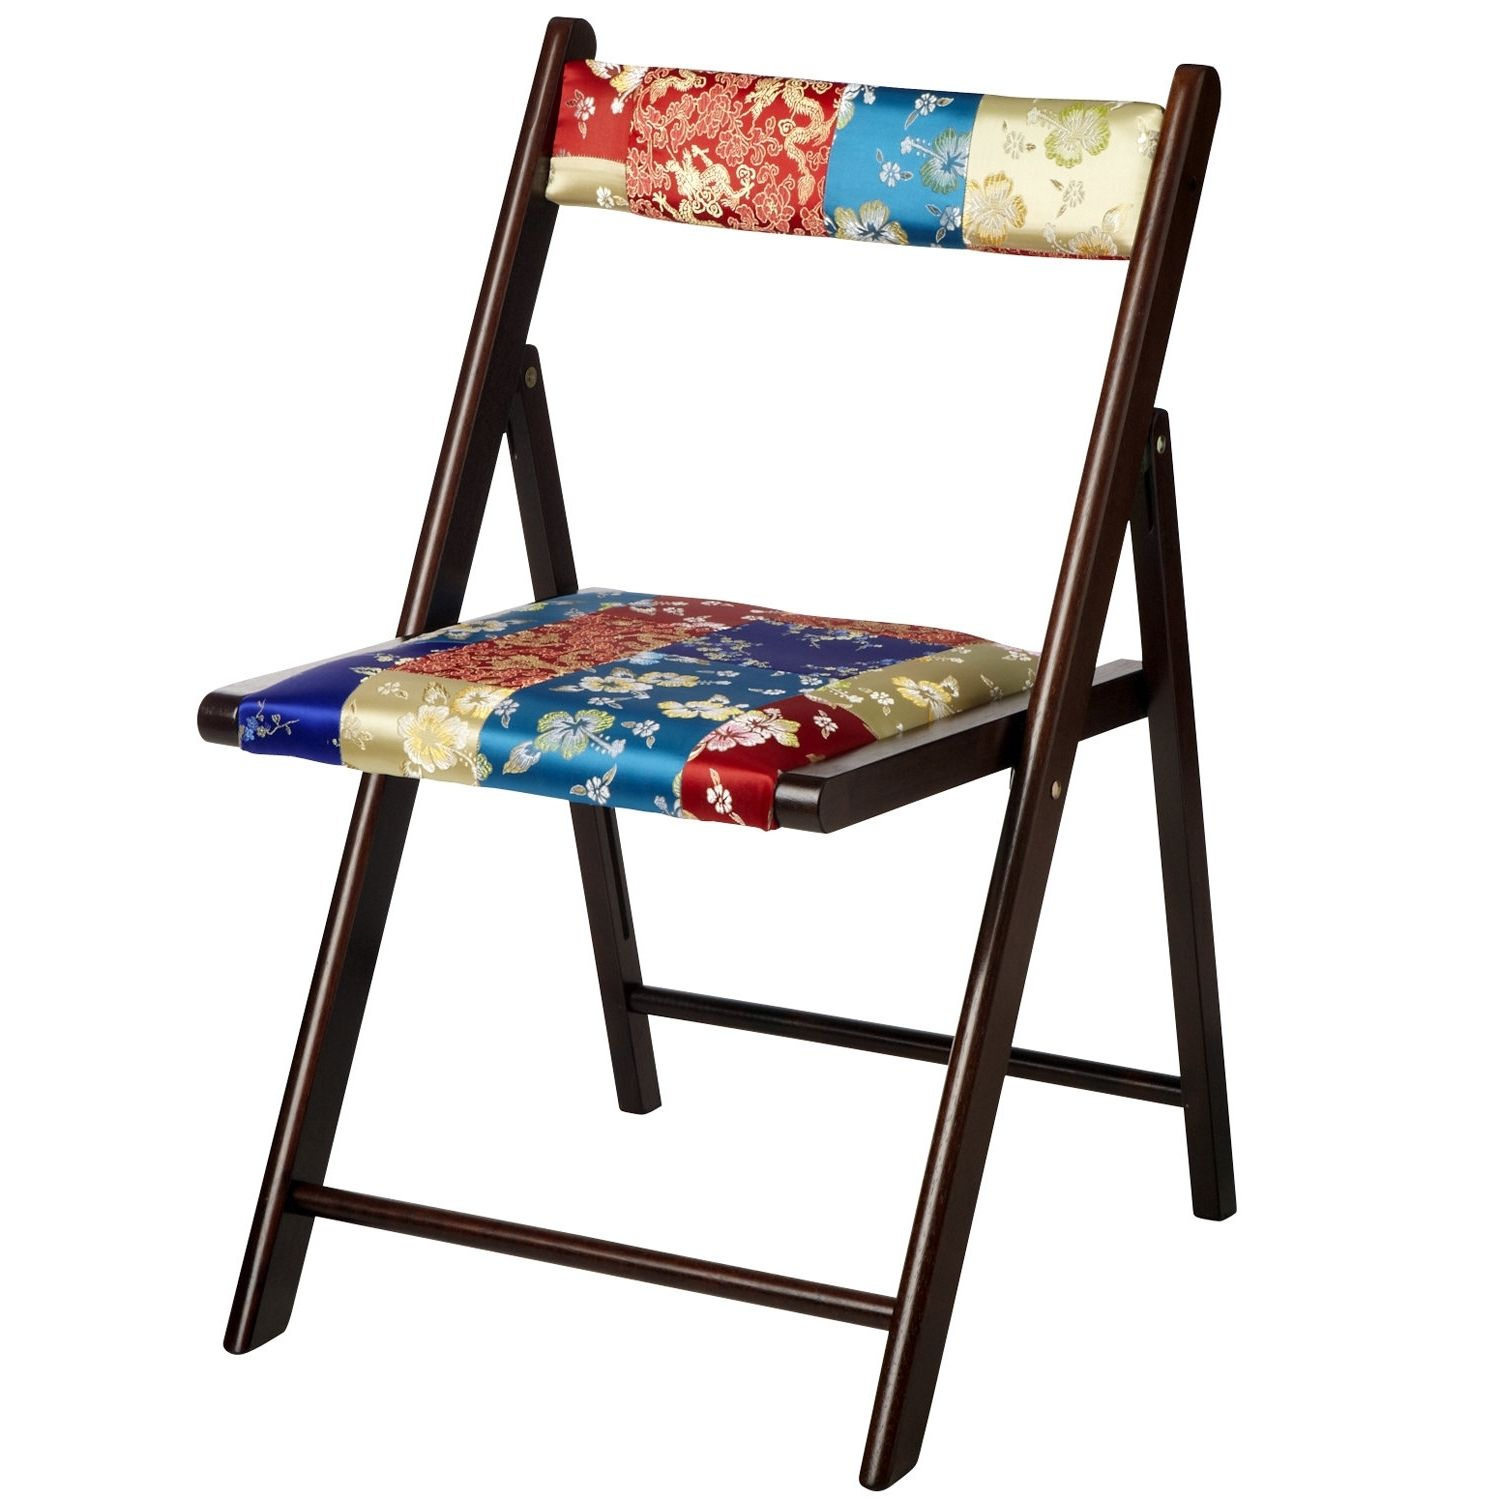 Beau Pier One Wooden Folding Chairs